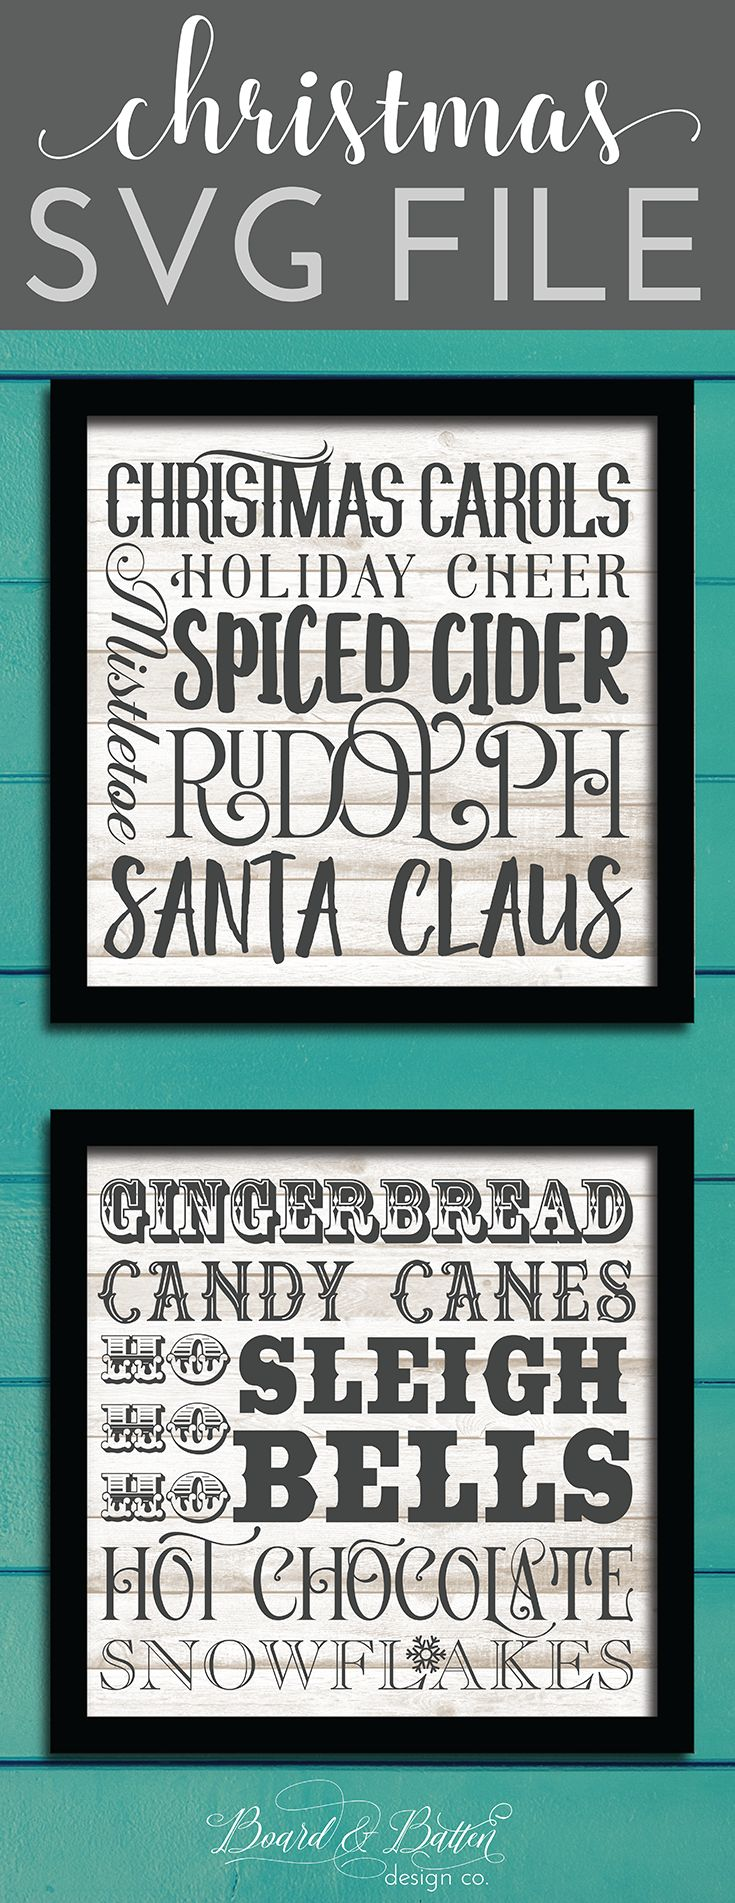 Looking for a design for a gorgeous Christmas statement piece to make with your Silhouette or Cricut? Look no further - this festive Christmas subway art SVG File is perfect for both tall wooden signs but best of all - you can split it into two squares and have a set of two smaller items. This design would be perfect on a long wooden sign, a set of throw pillows, festive Christmas t-shirts, and more!  All of my SVG files are fully tested and include a commercial use license.